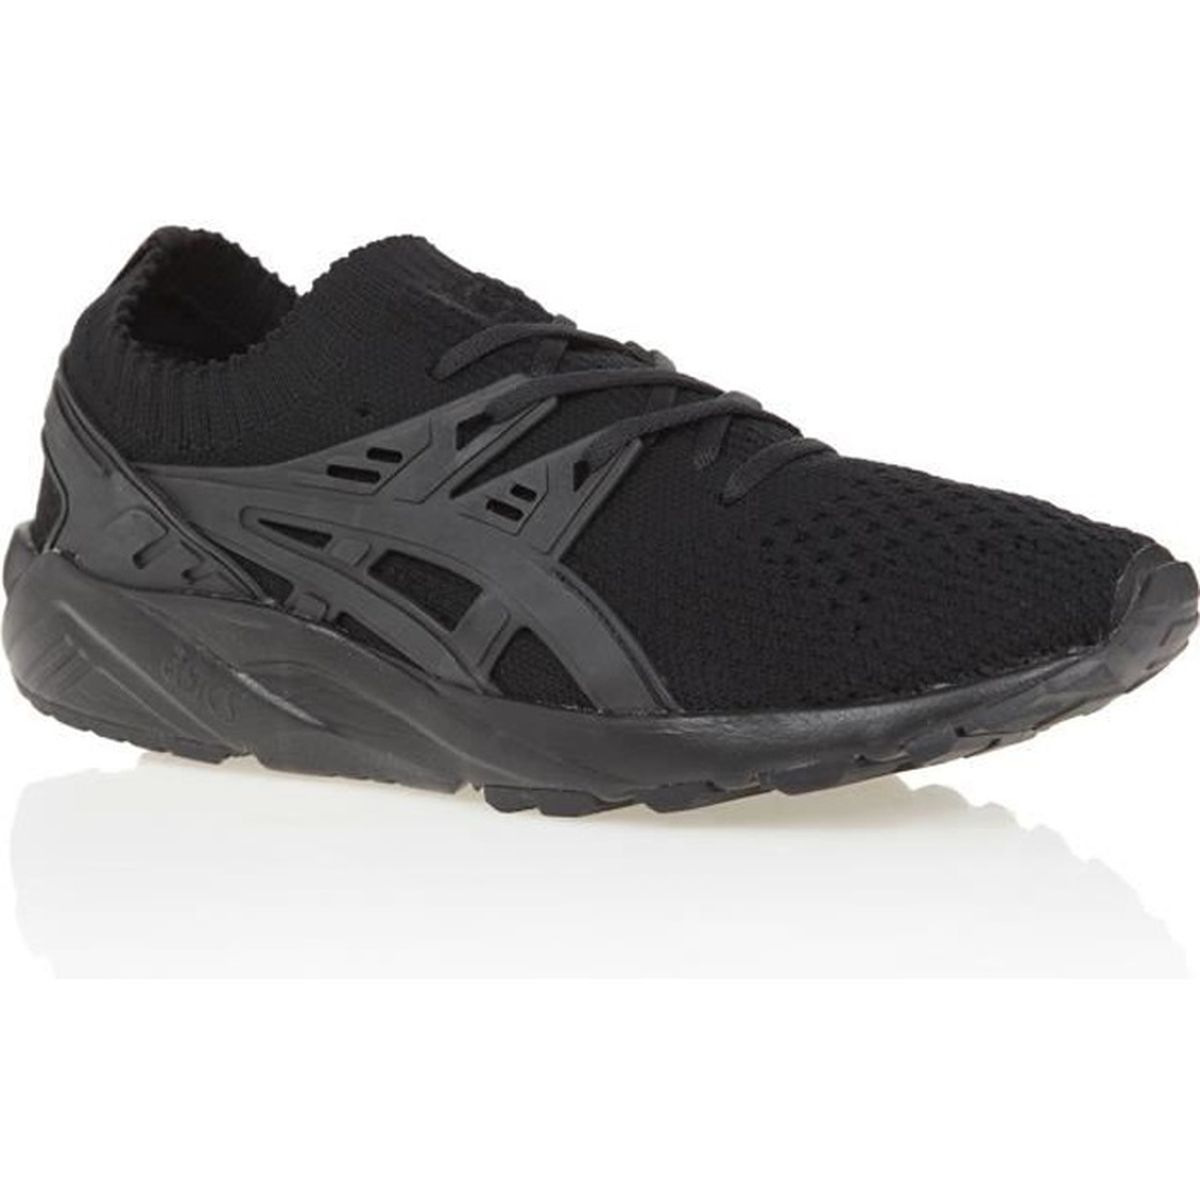 gel kayano 23 homme chaussures running blanc asics taille 43.5